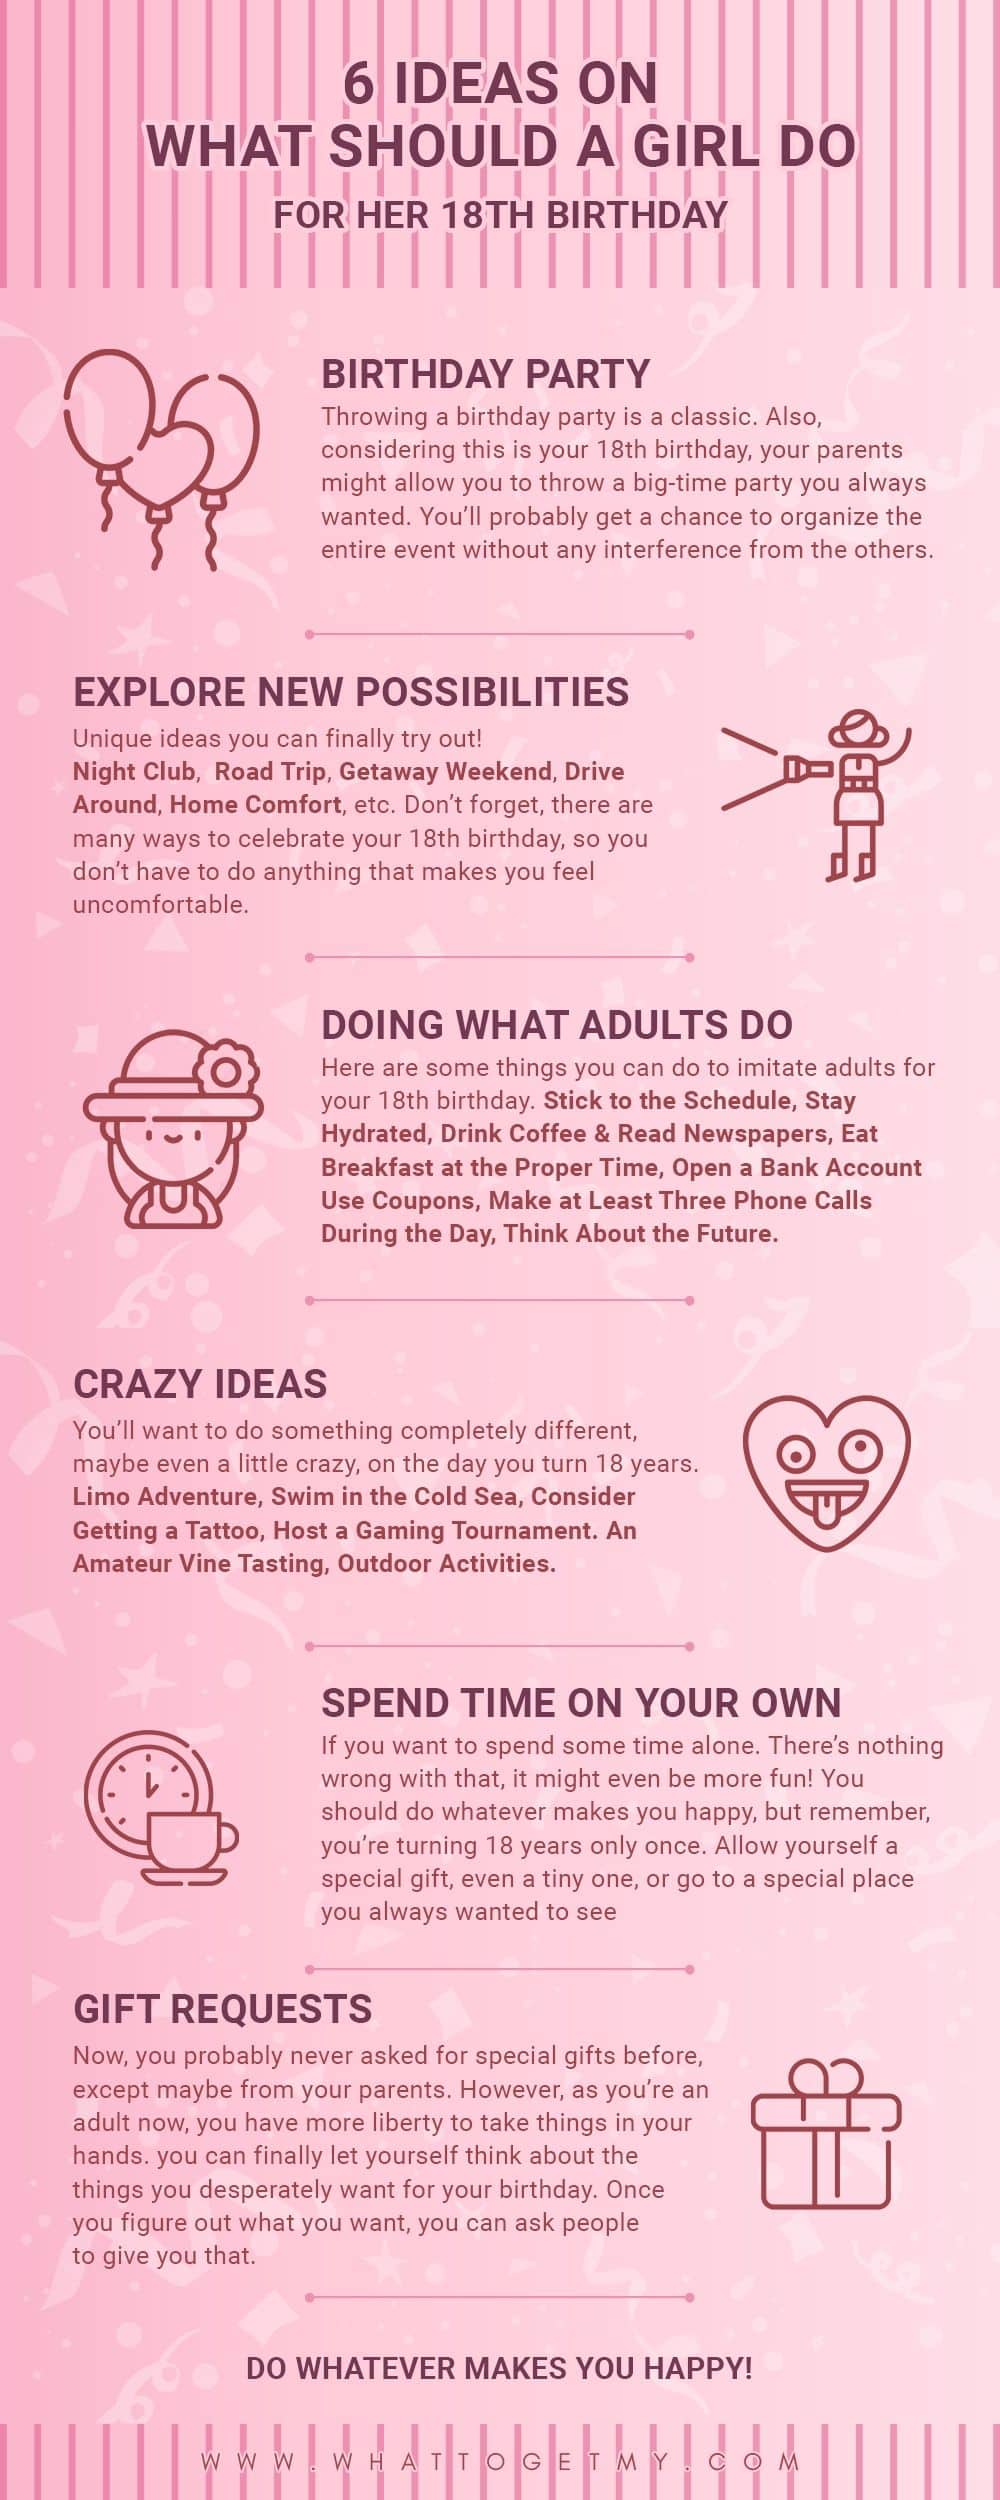 6 Ideas On What Should A Girl Do For Her 18th Birthday What To Get My